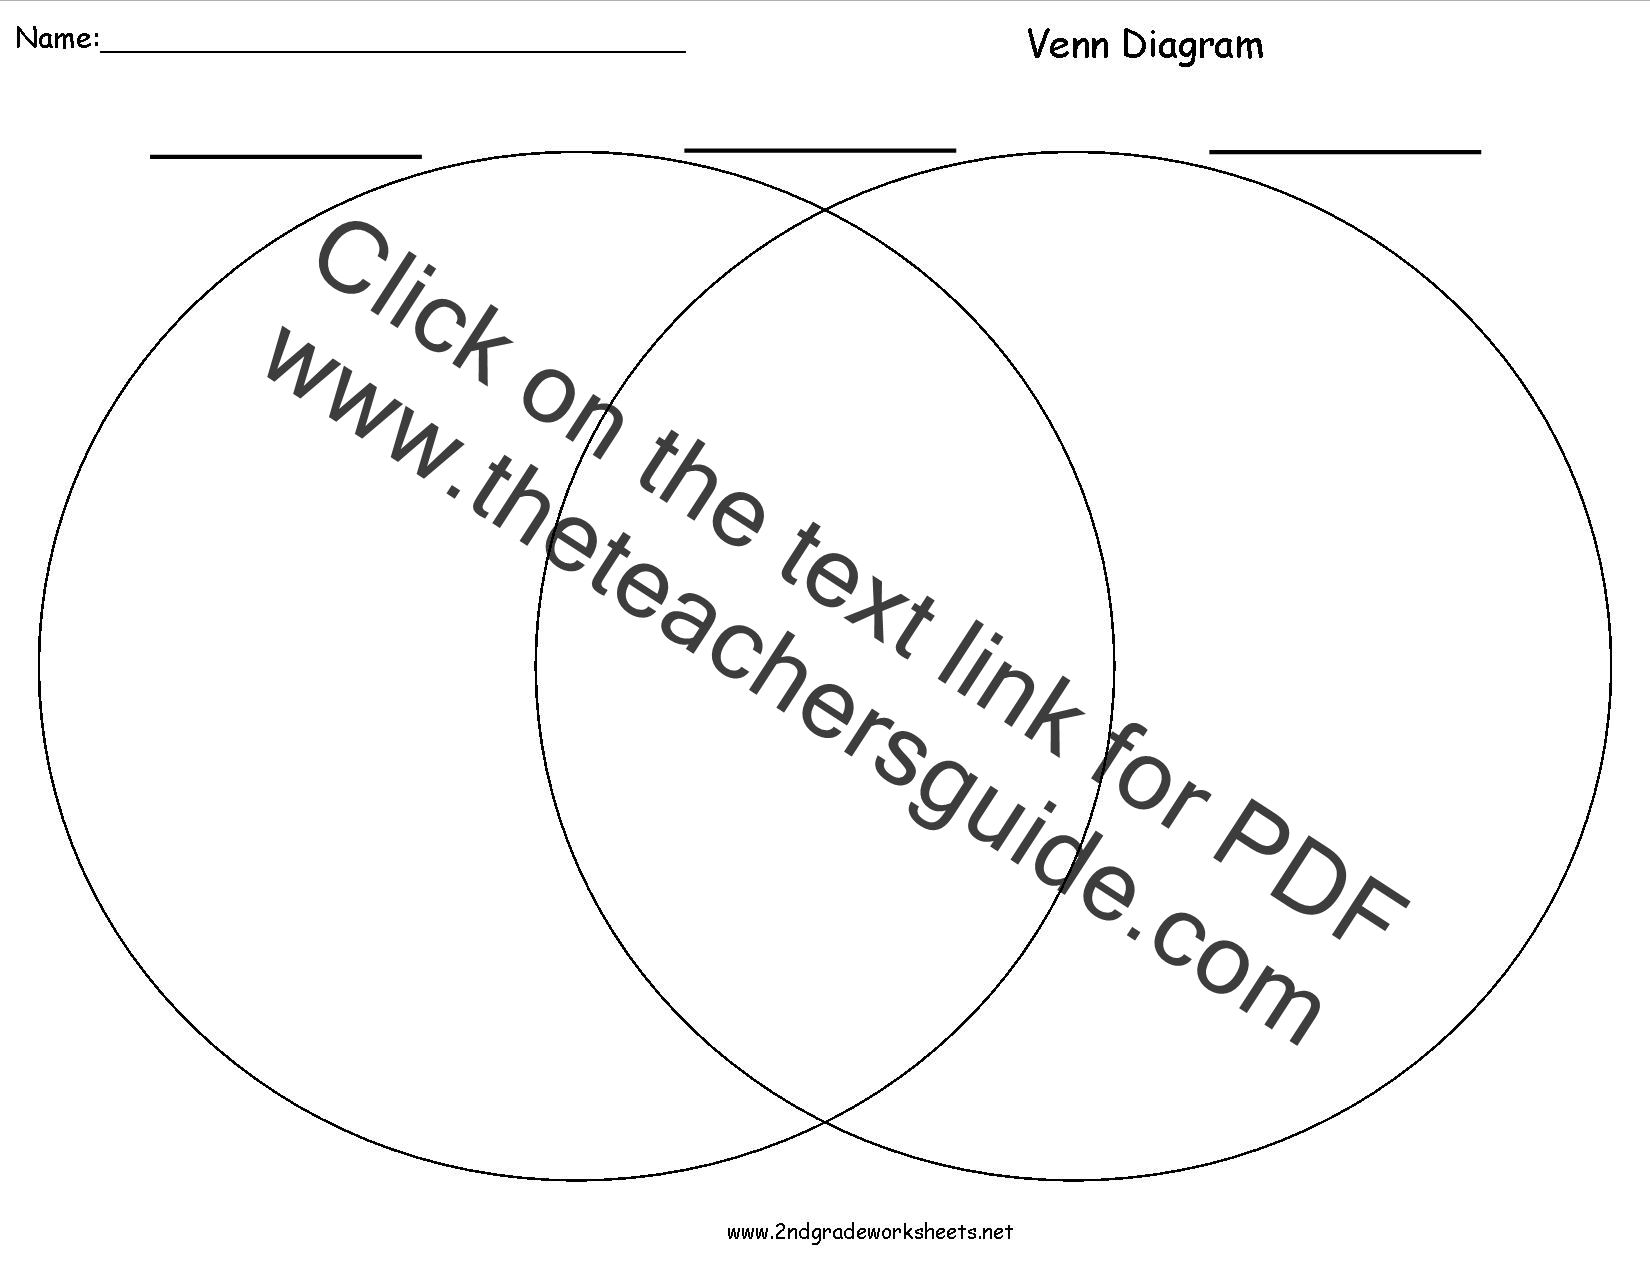 Venn Diagram Worksheets Free | Free Download Wiring Diagram Schematic